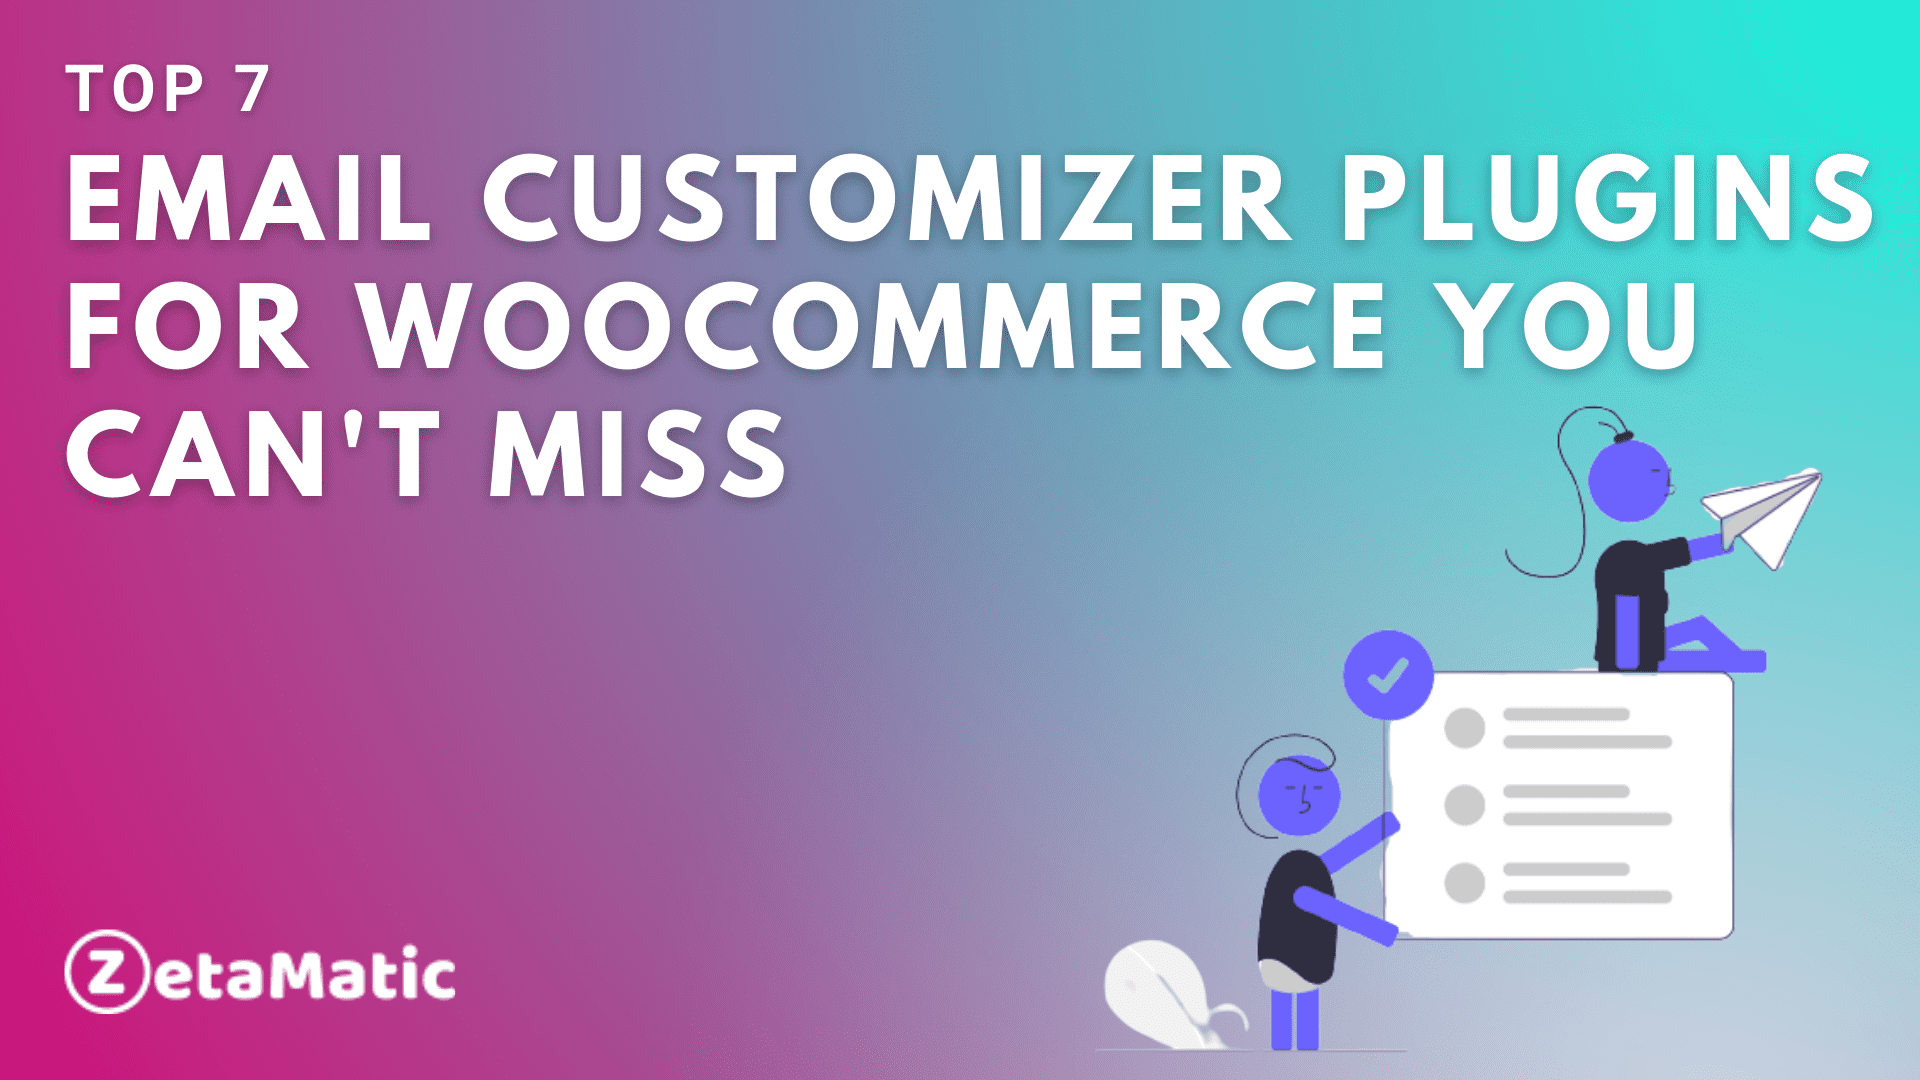 Top 7 Email Customizer Plugins for Woocommerce You Can't-Miss